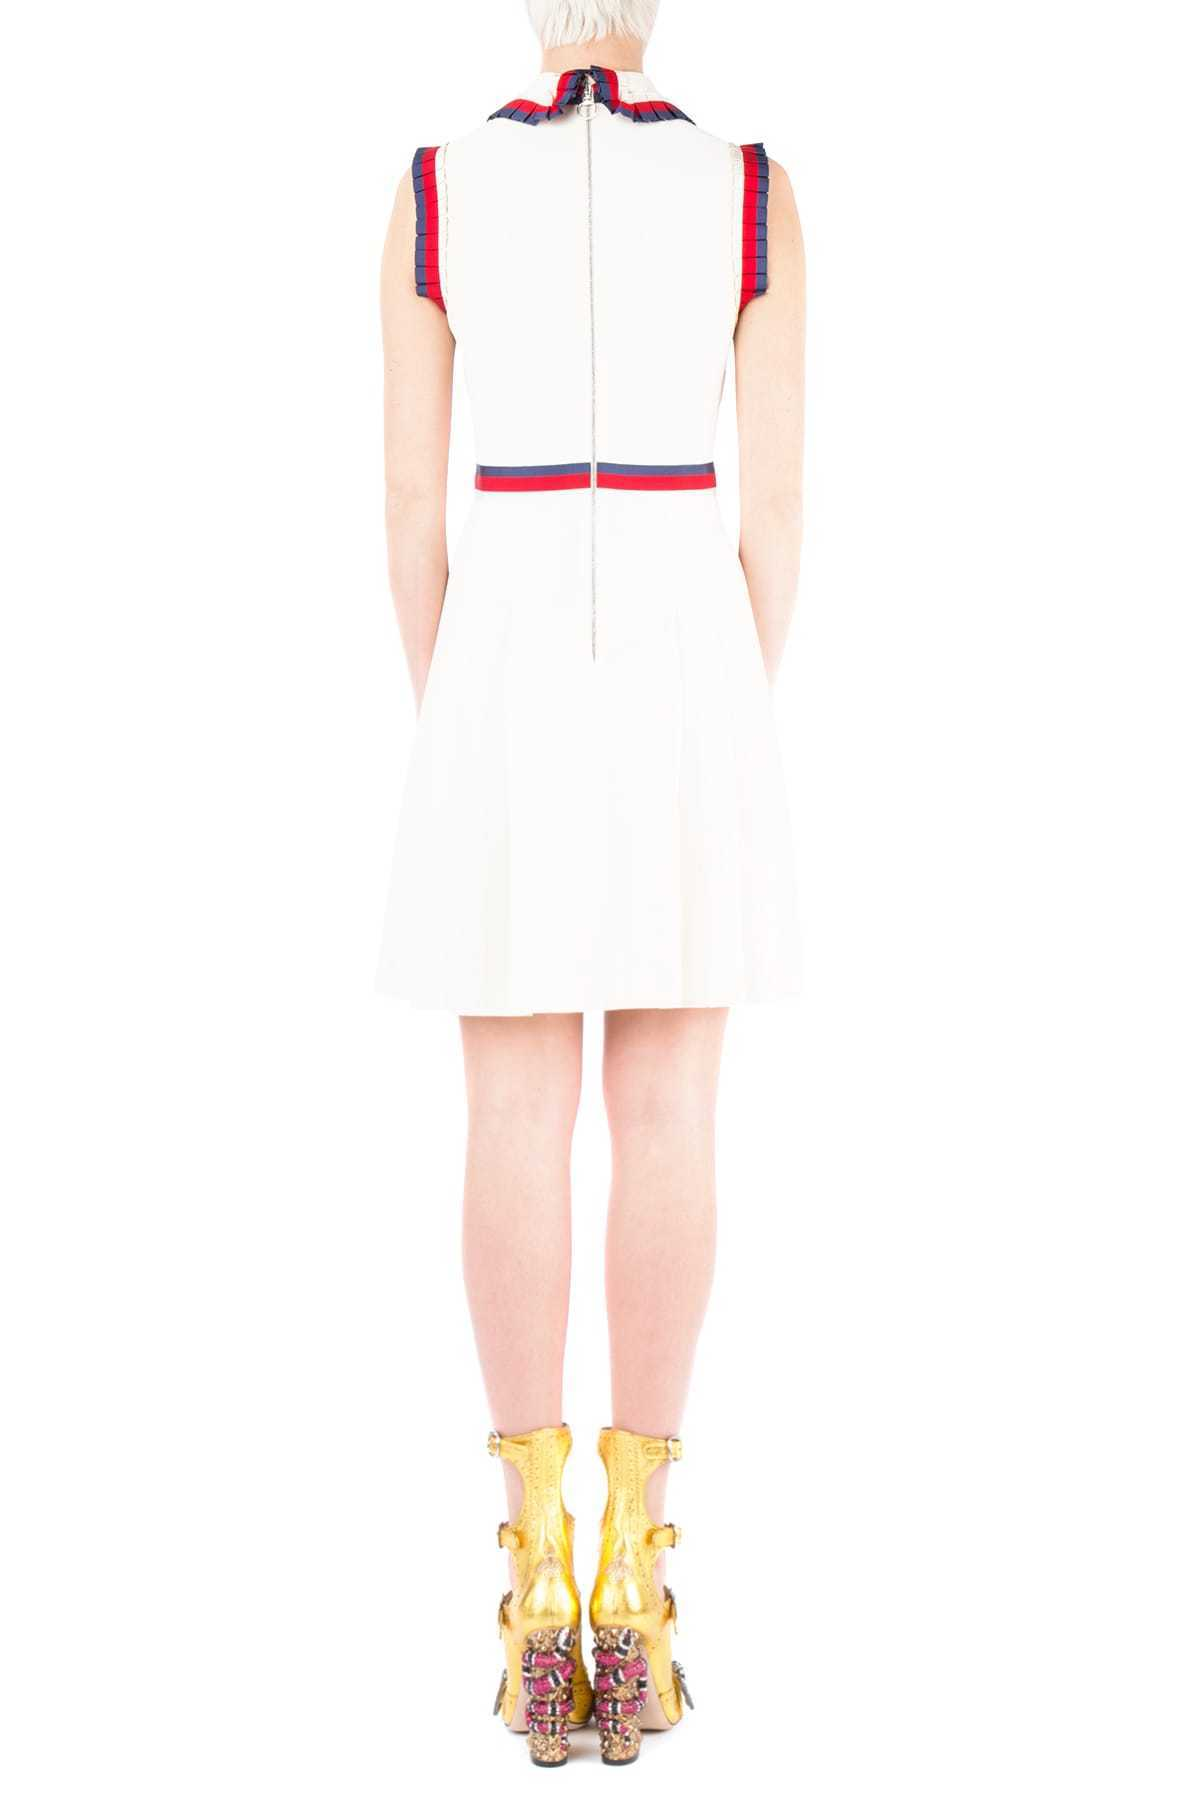 GUCCI(グッチ)☆Ivory stretch viscose dress☆ホワイト系